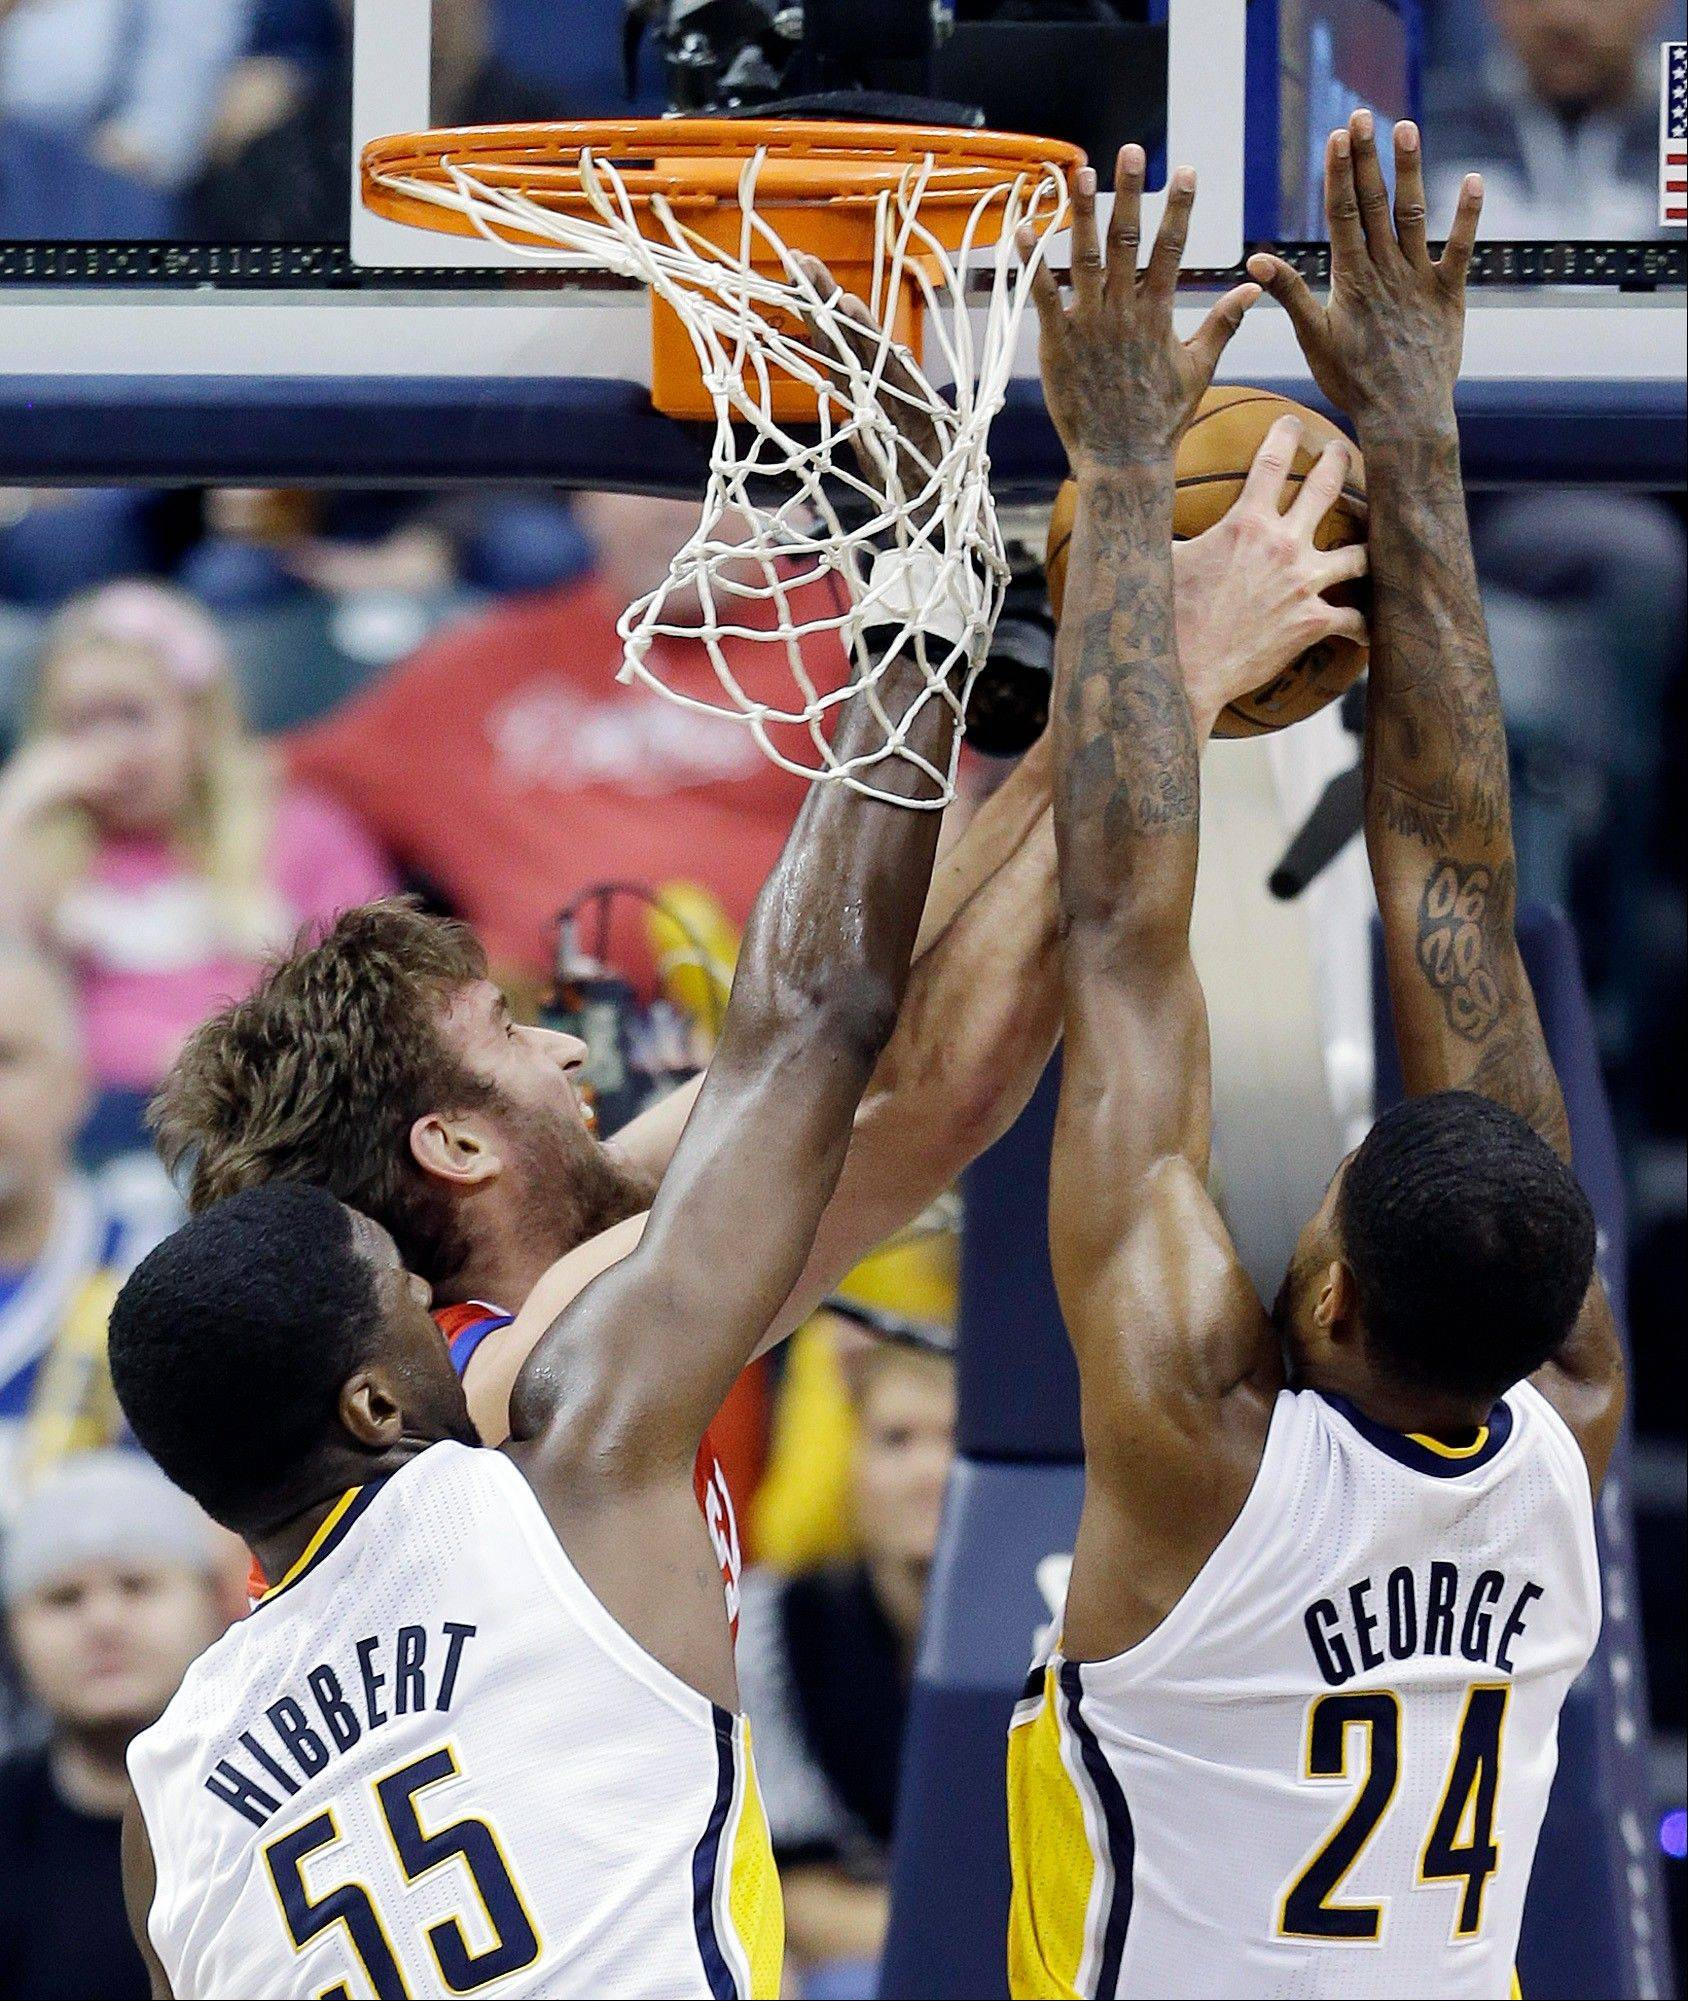 The Philadelphia 76ers� Spencer Hawes, second from left, puts up a shot against Indiana Pacers center Roy Hibbert and Paul George Friday during the second half in Indianapolis. The Pacers defeated the 76ers 95-85.